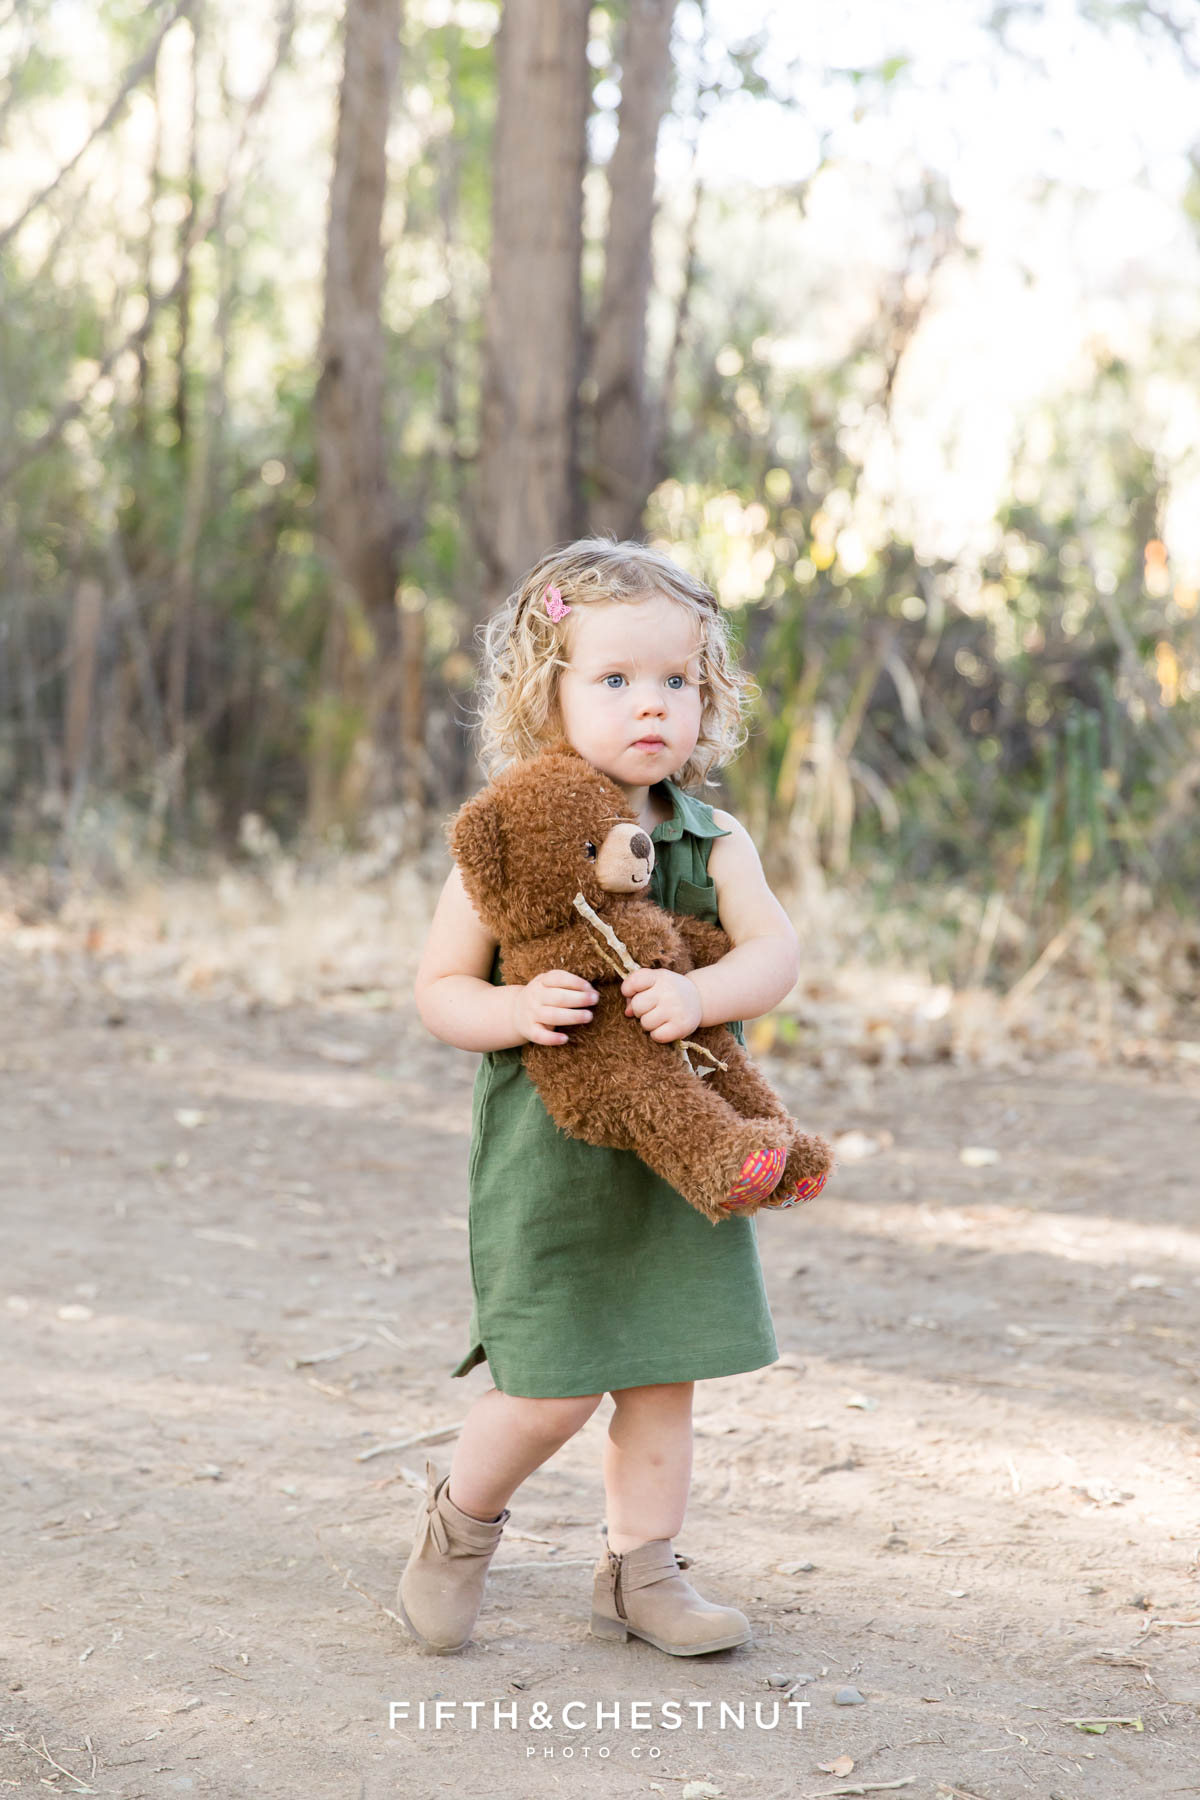 Toddler girl carries a teddy bear and a stick down a dirt path in a green dress.